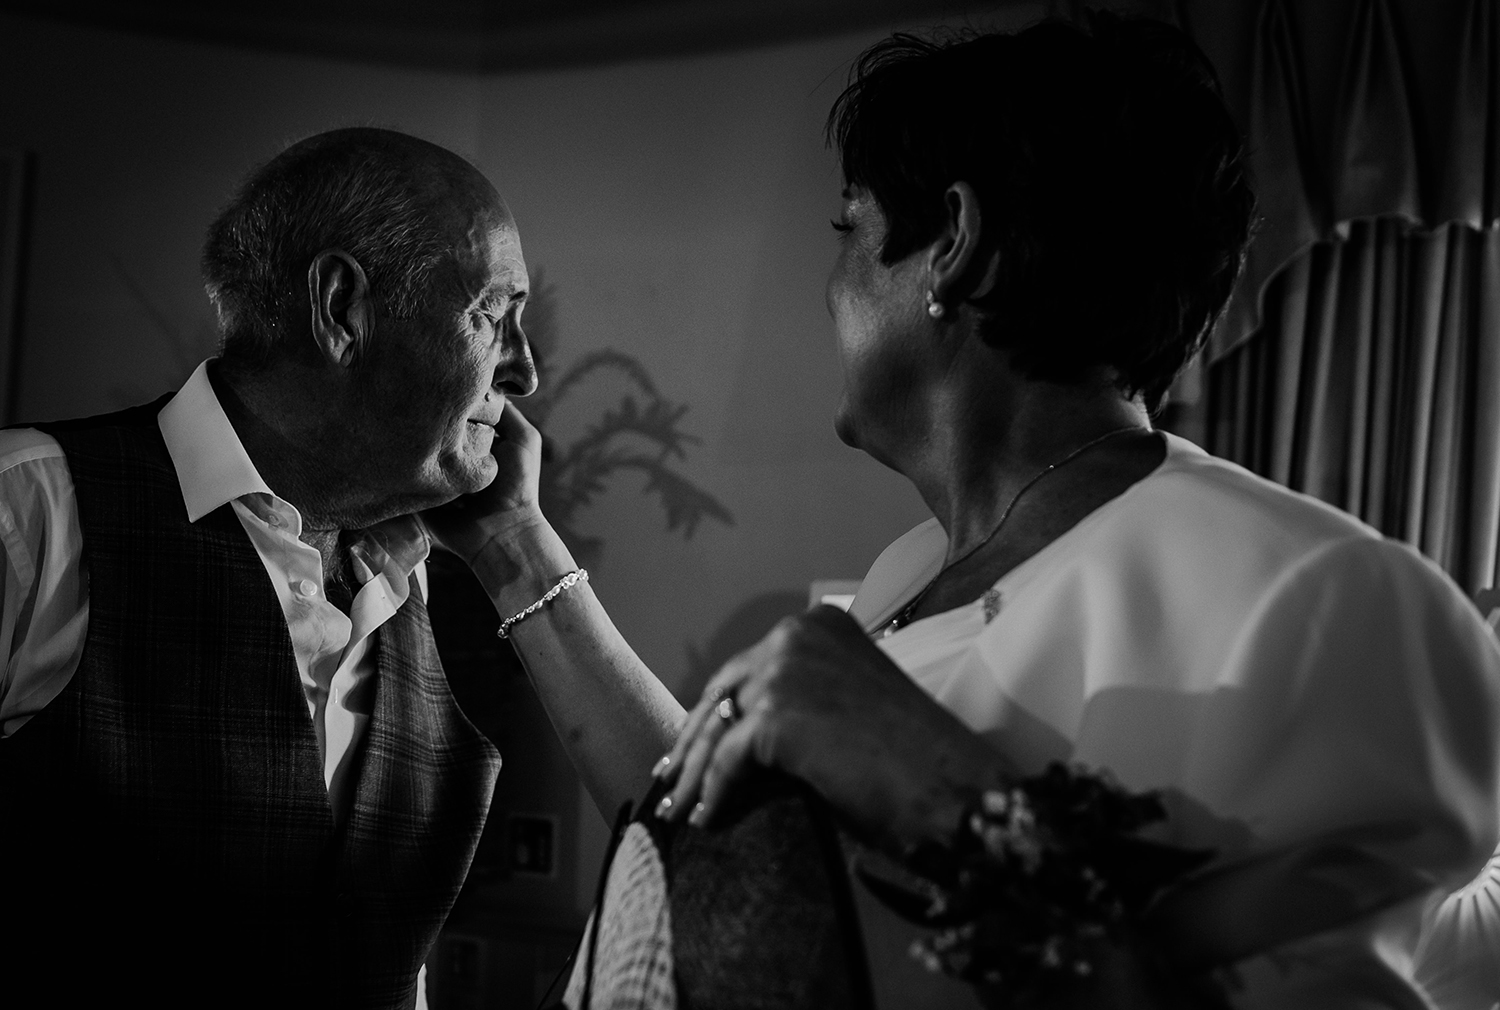 bw photo of emotional father of the groom. The brides mother has her hand on his cheek to comfort him